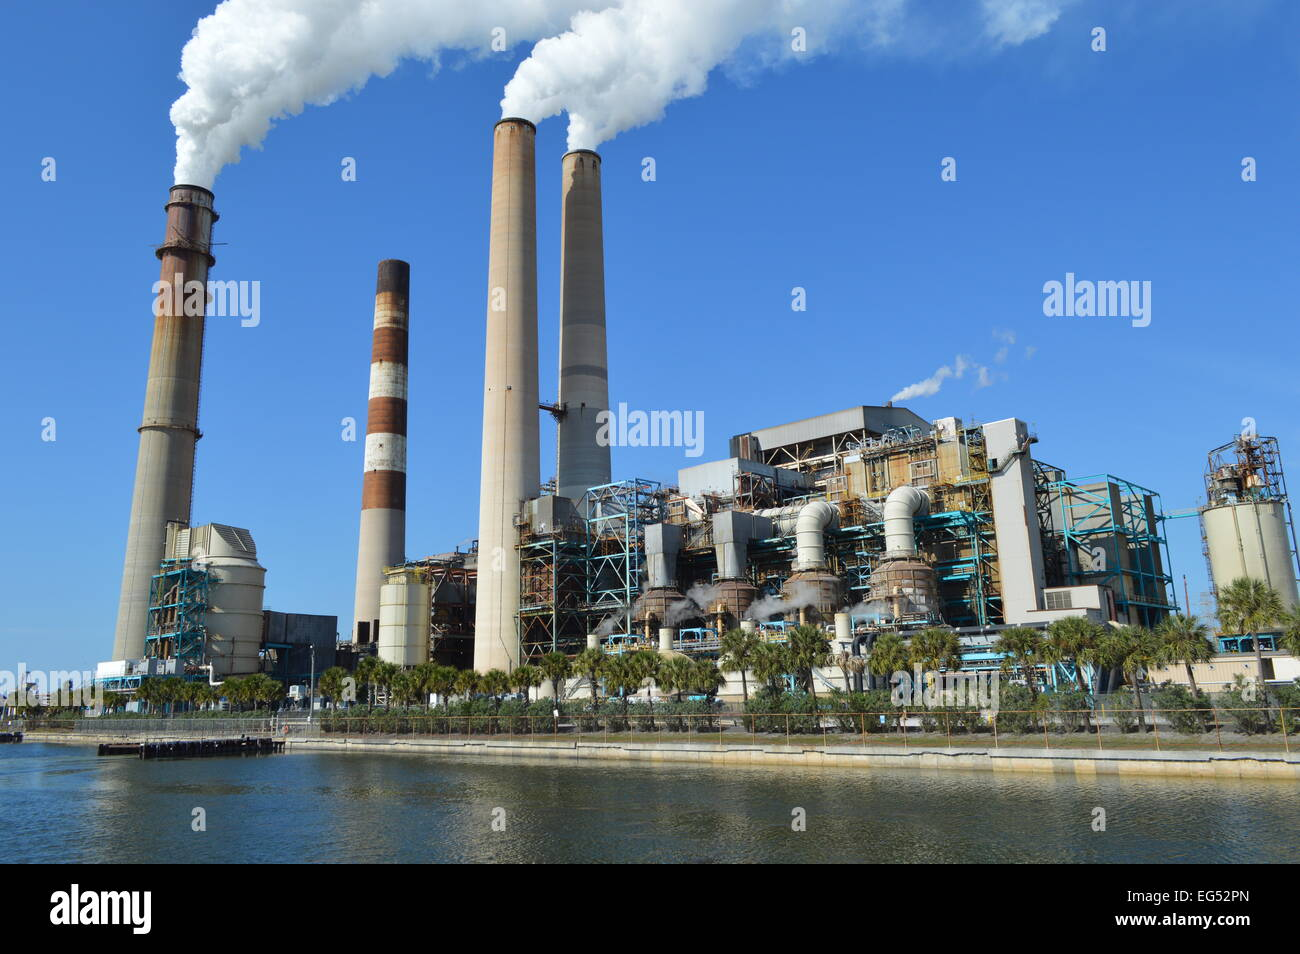 Tampa Electric Power Plant - Stock Image